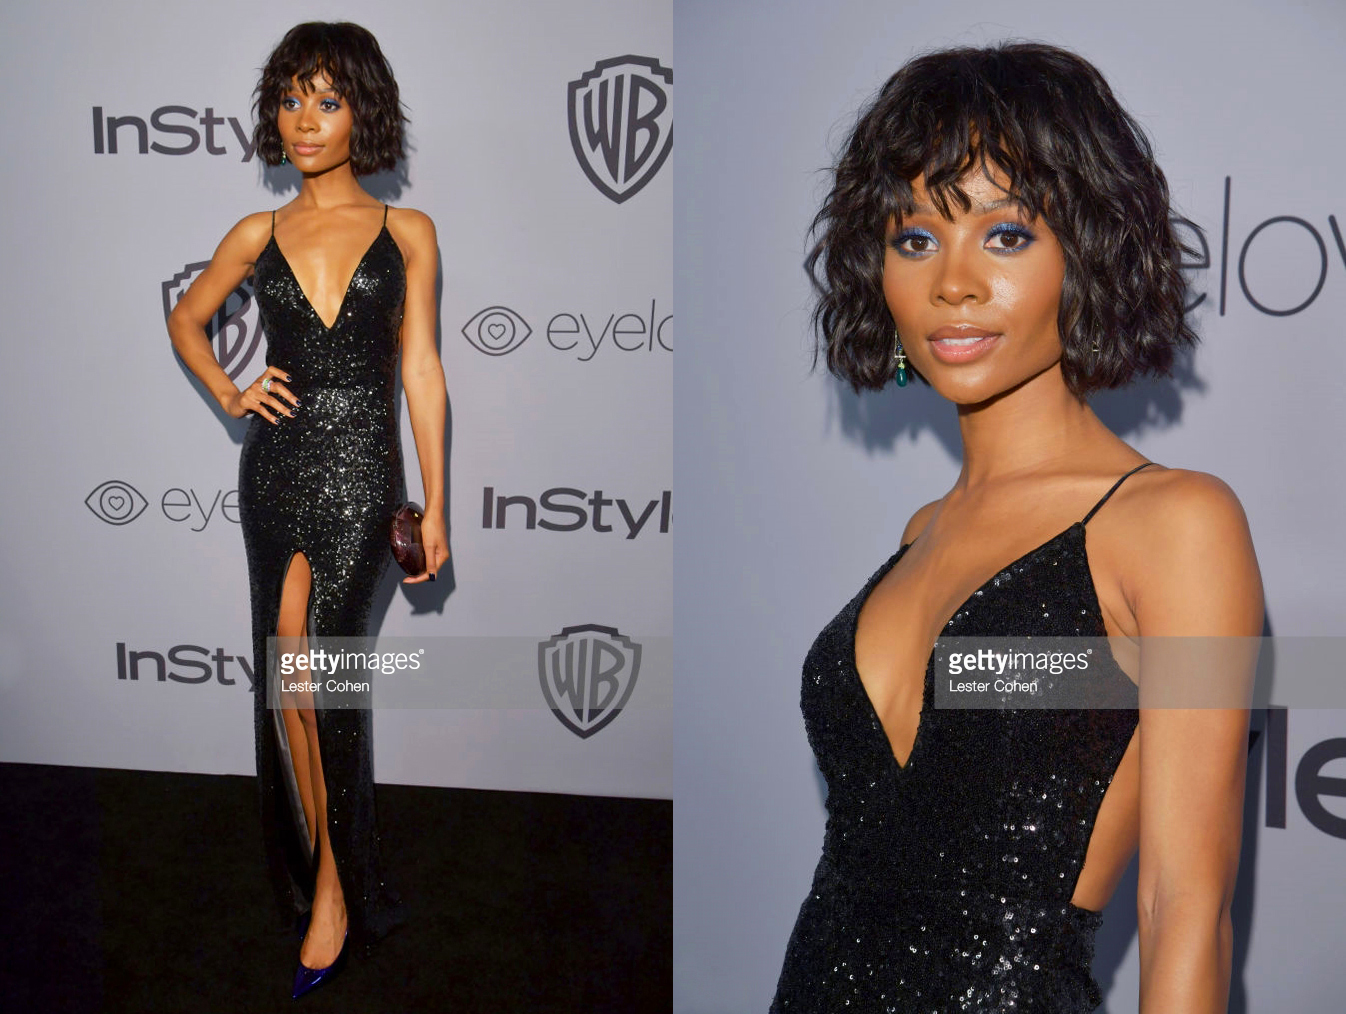 ZURI HALL, E! NEWS TV HOST, DRESSED BY RAQUEL BALENCIA DURING THE GOLDEN GLOBES, WARNER BROS ENTERTAINMENT PARTY